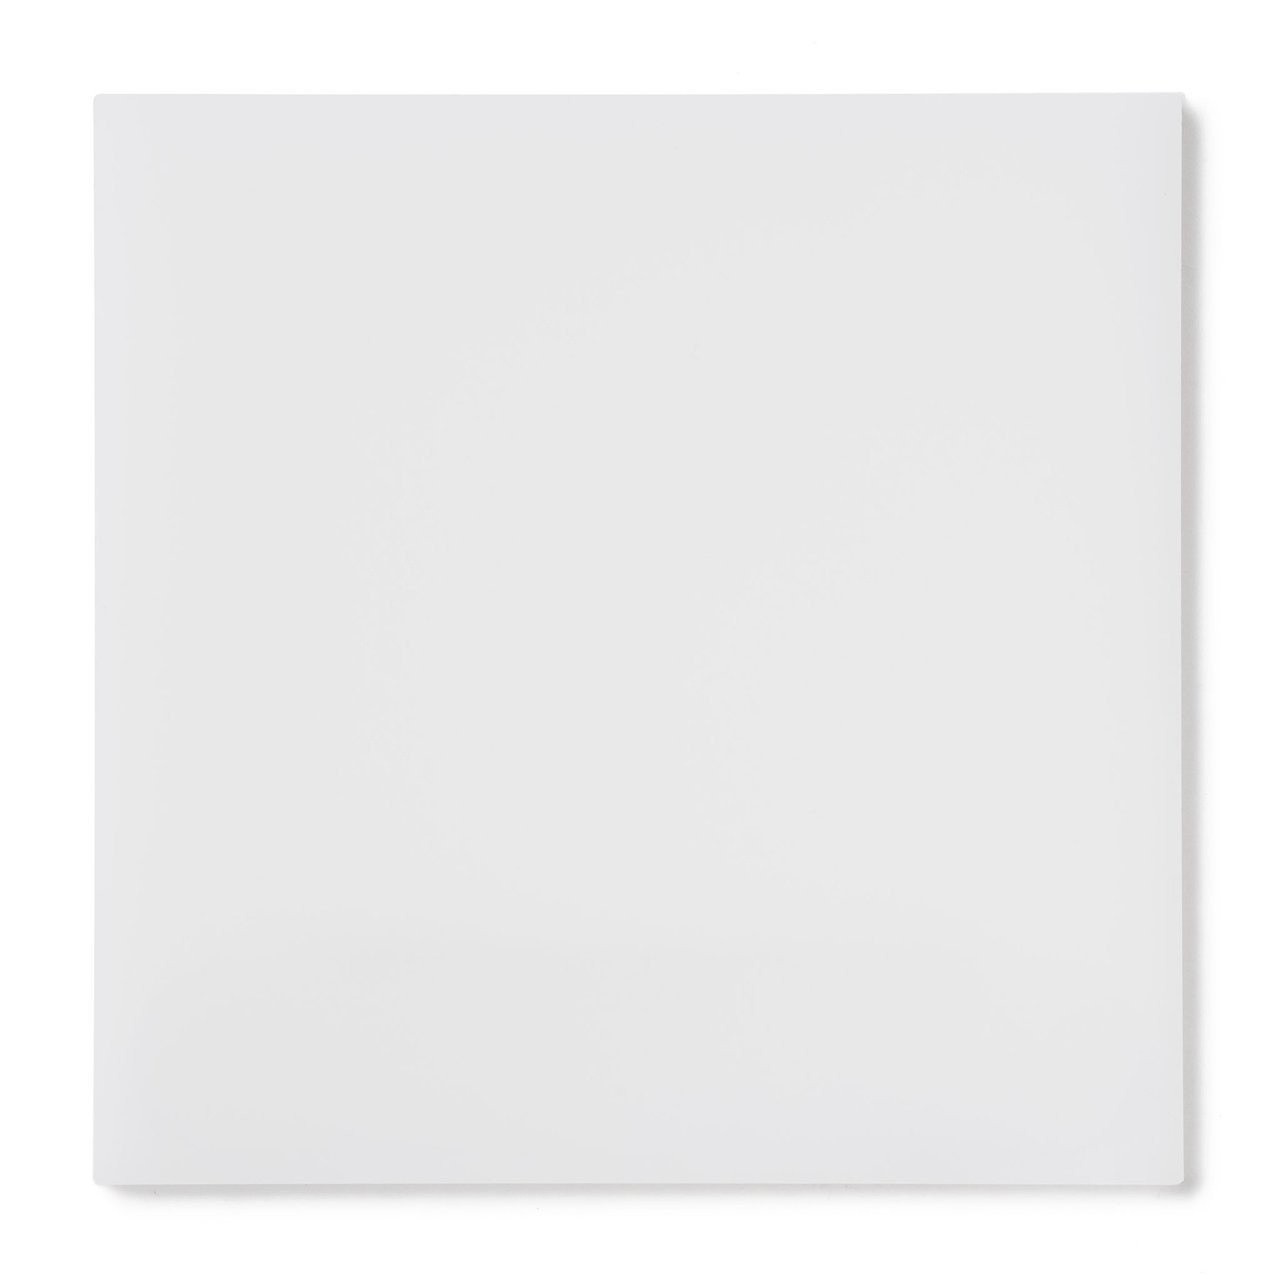 "4' x 8' x  3/16"" Translucent White Acrylic Sheet, P95 ( 1 side matte )"